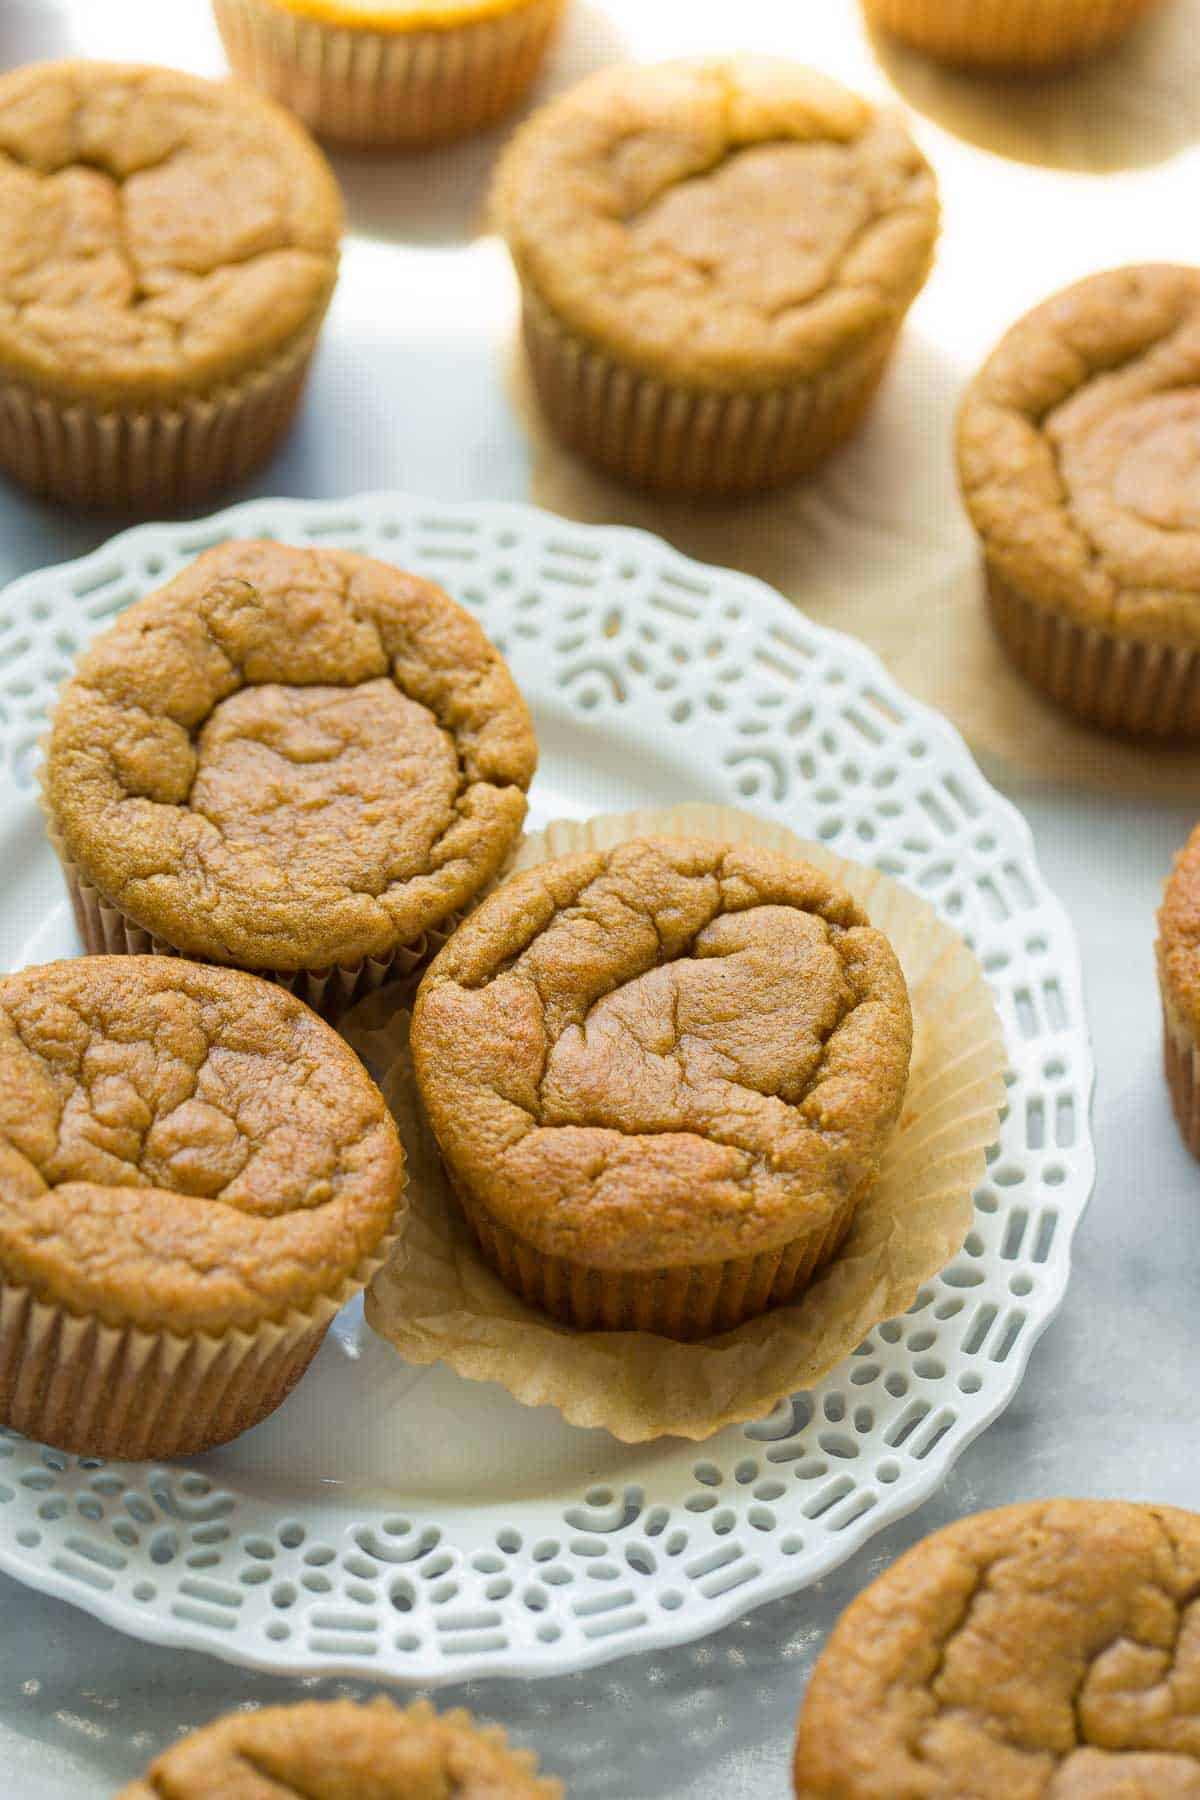 muffins on white plate with marble background